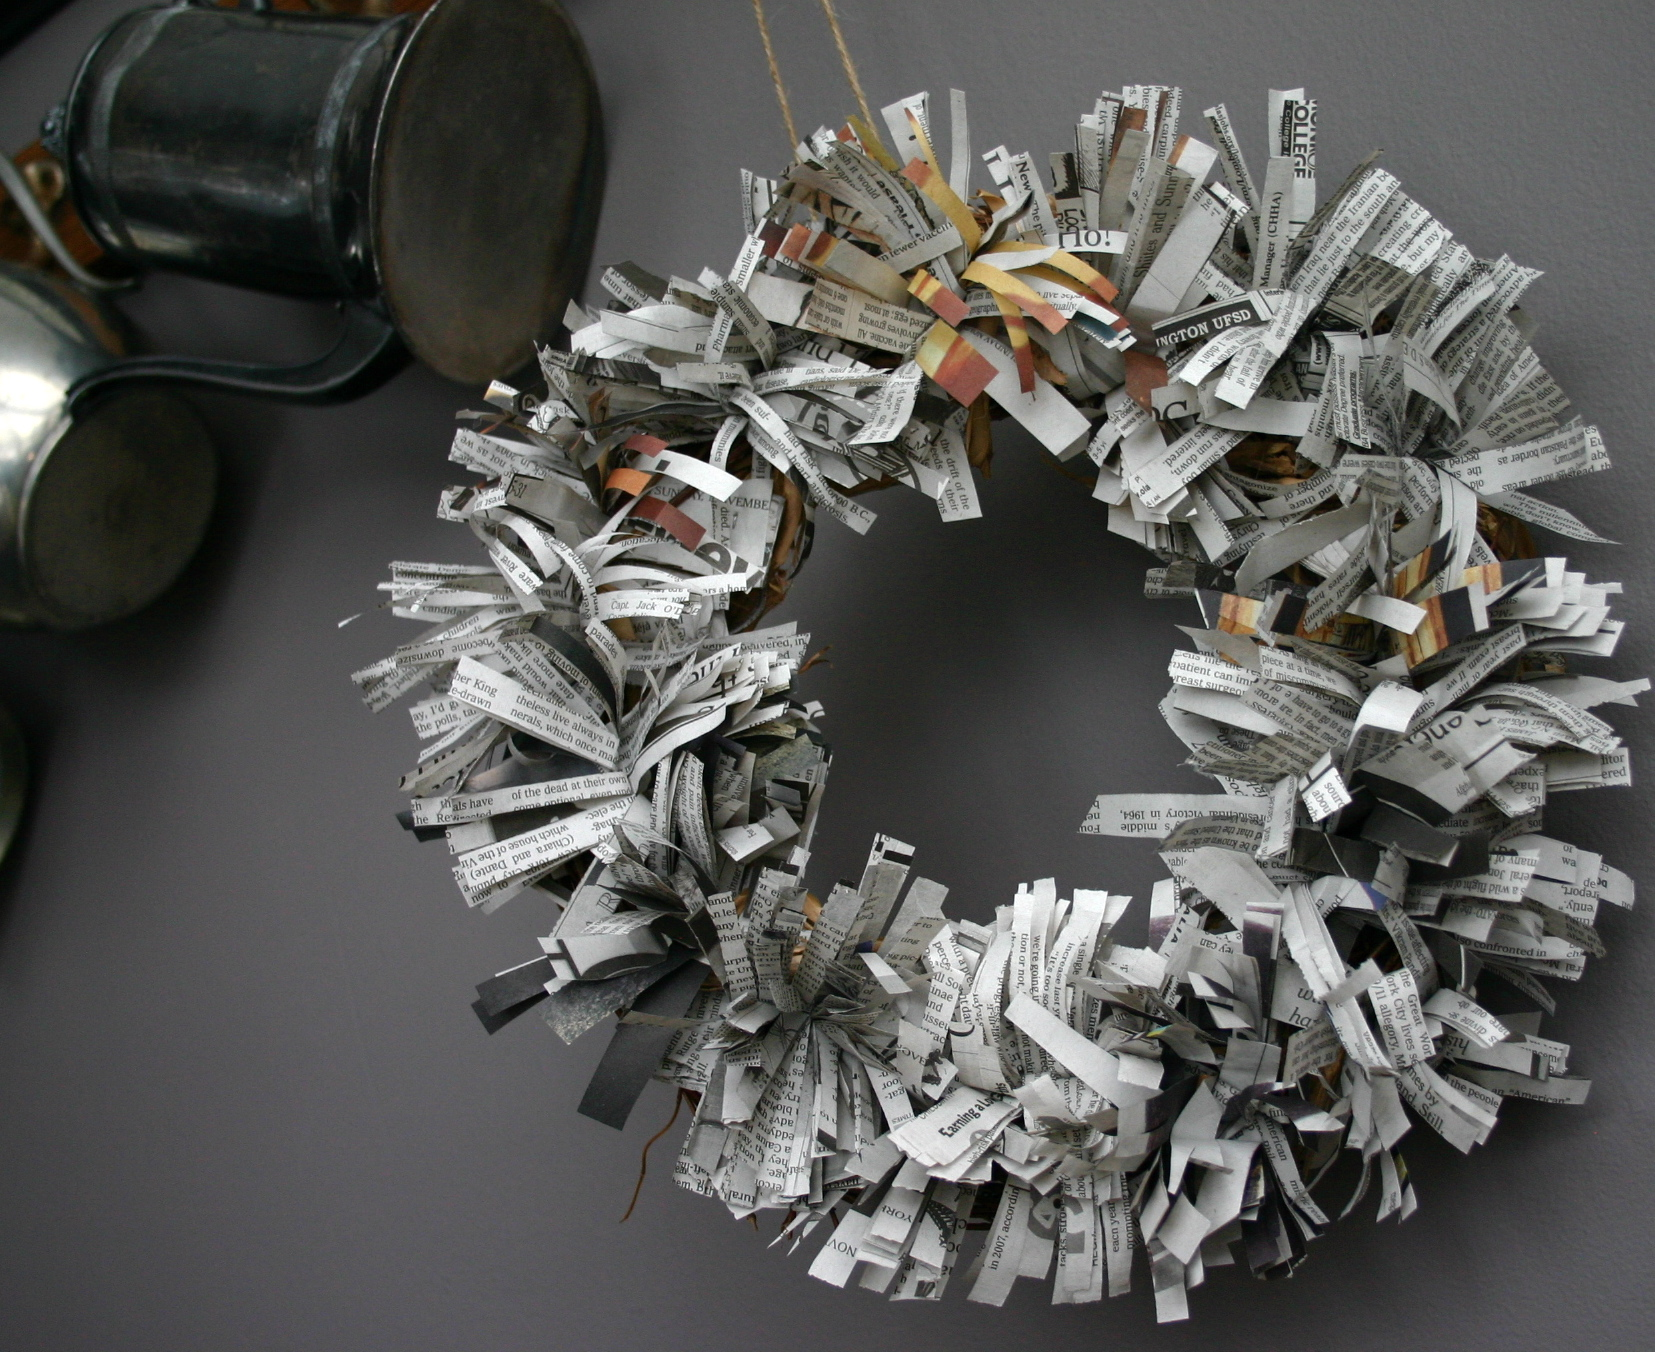 Small shredded fans of newspaper are tucked into a grapevine wreath to create a holiday look that really says something.